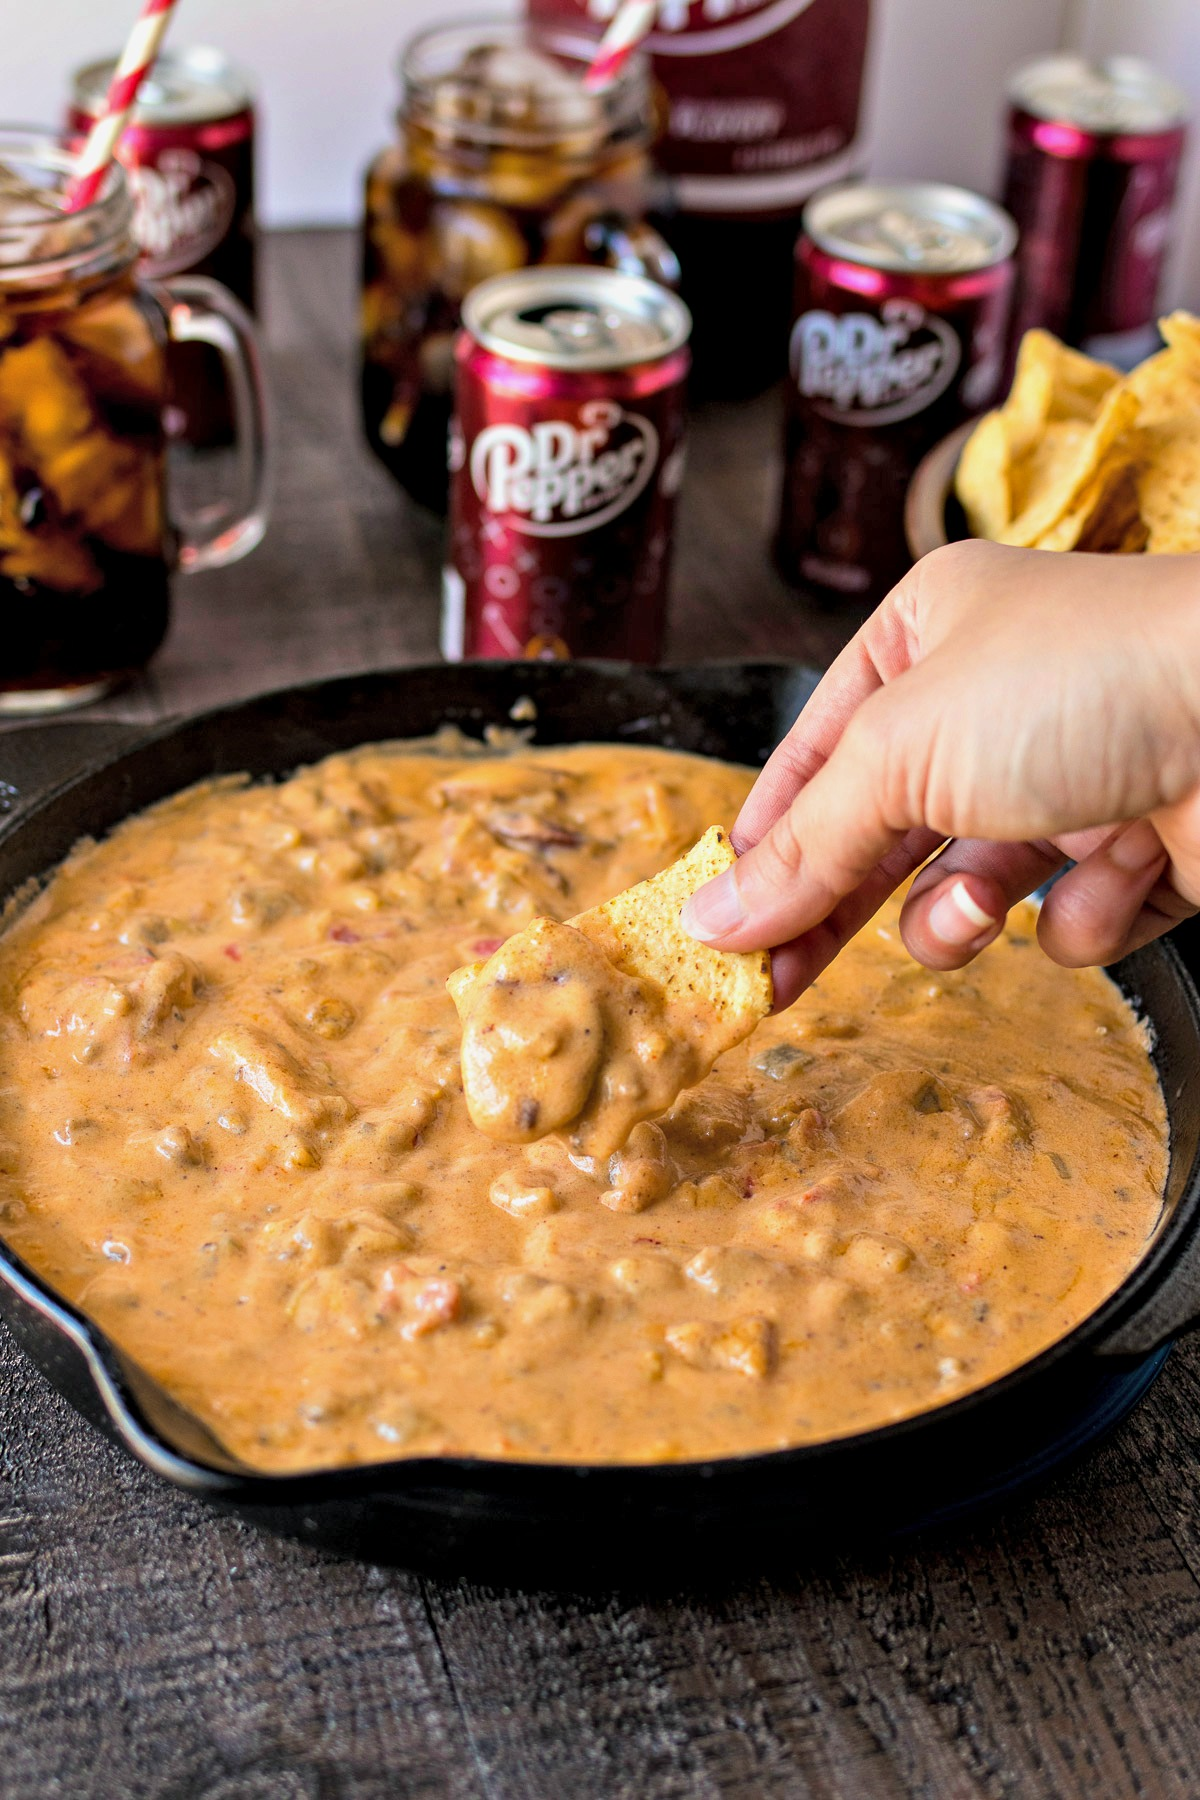 Dipping a tortilla chip into a skillet of Cowboy Queso